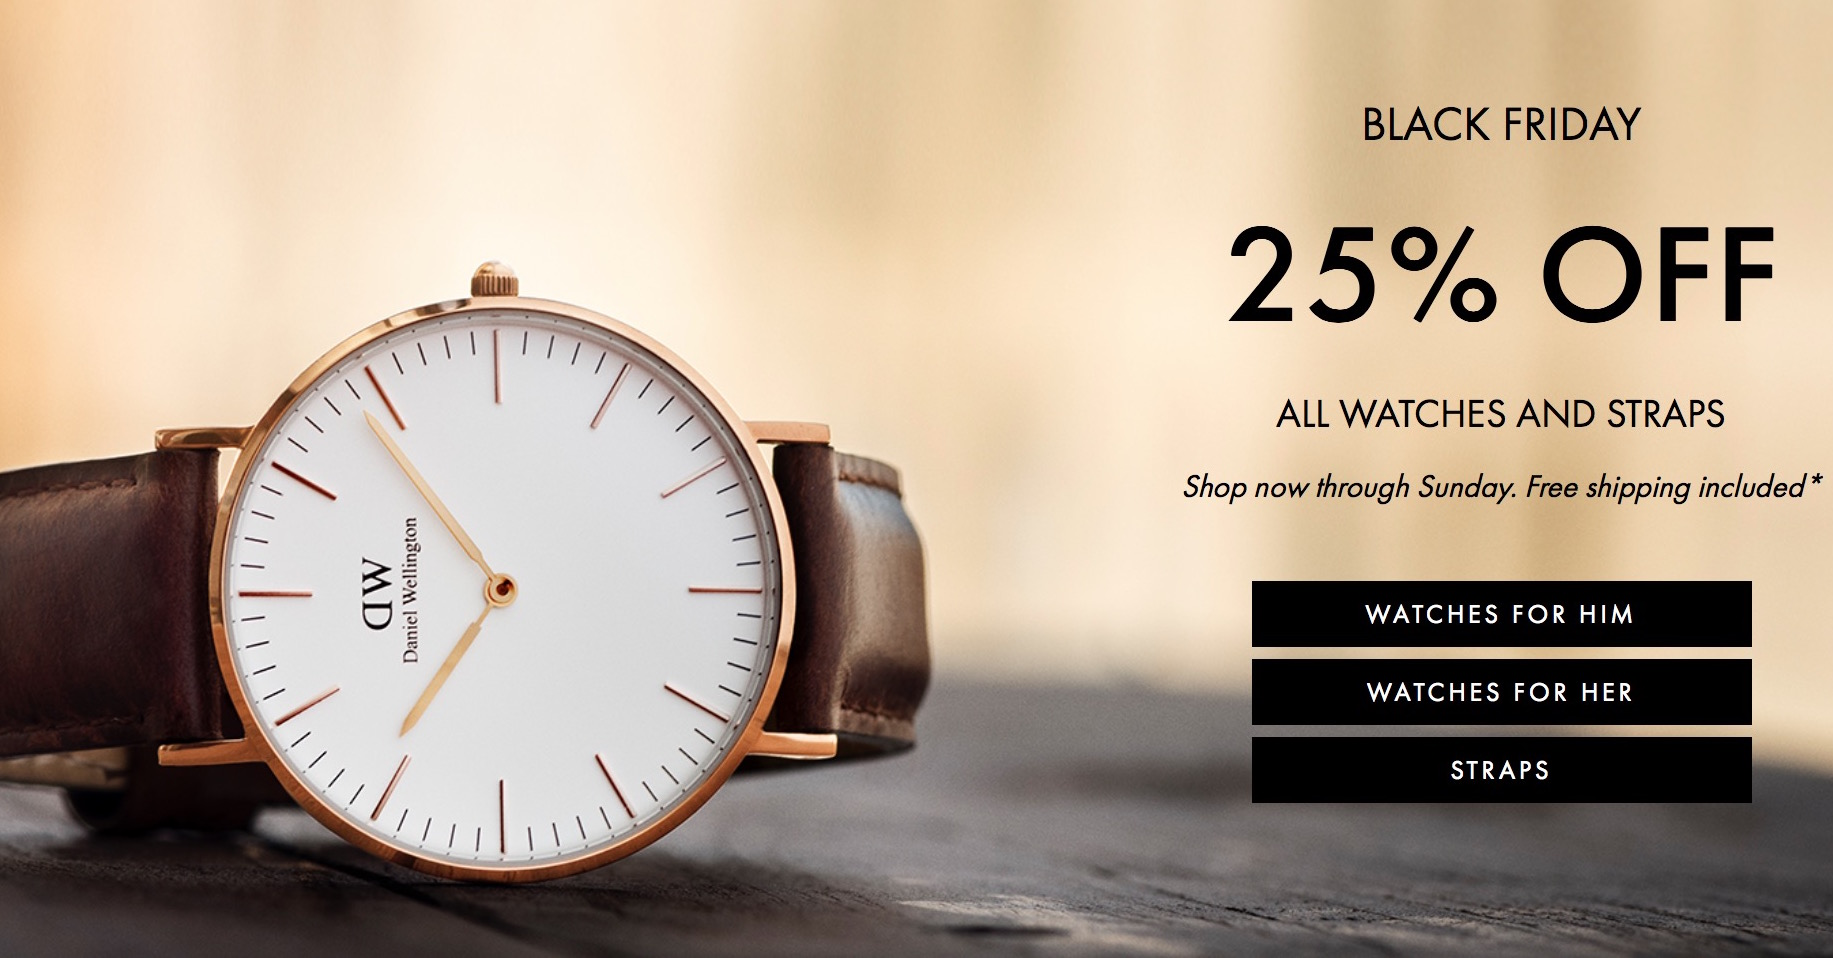 05459833e56e Till 29 Nov 2015 Daniel Wellington  Black Friday Sale 25% OFF All Watches  and Straps